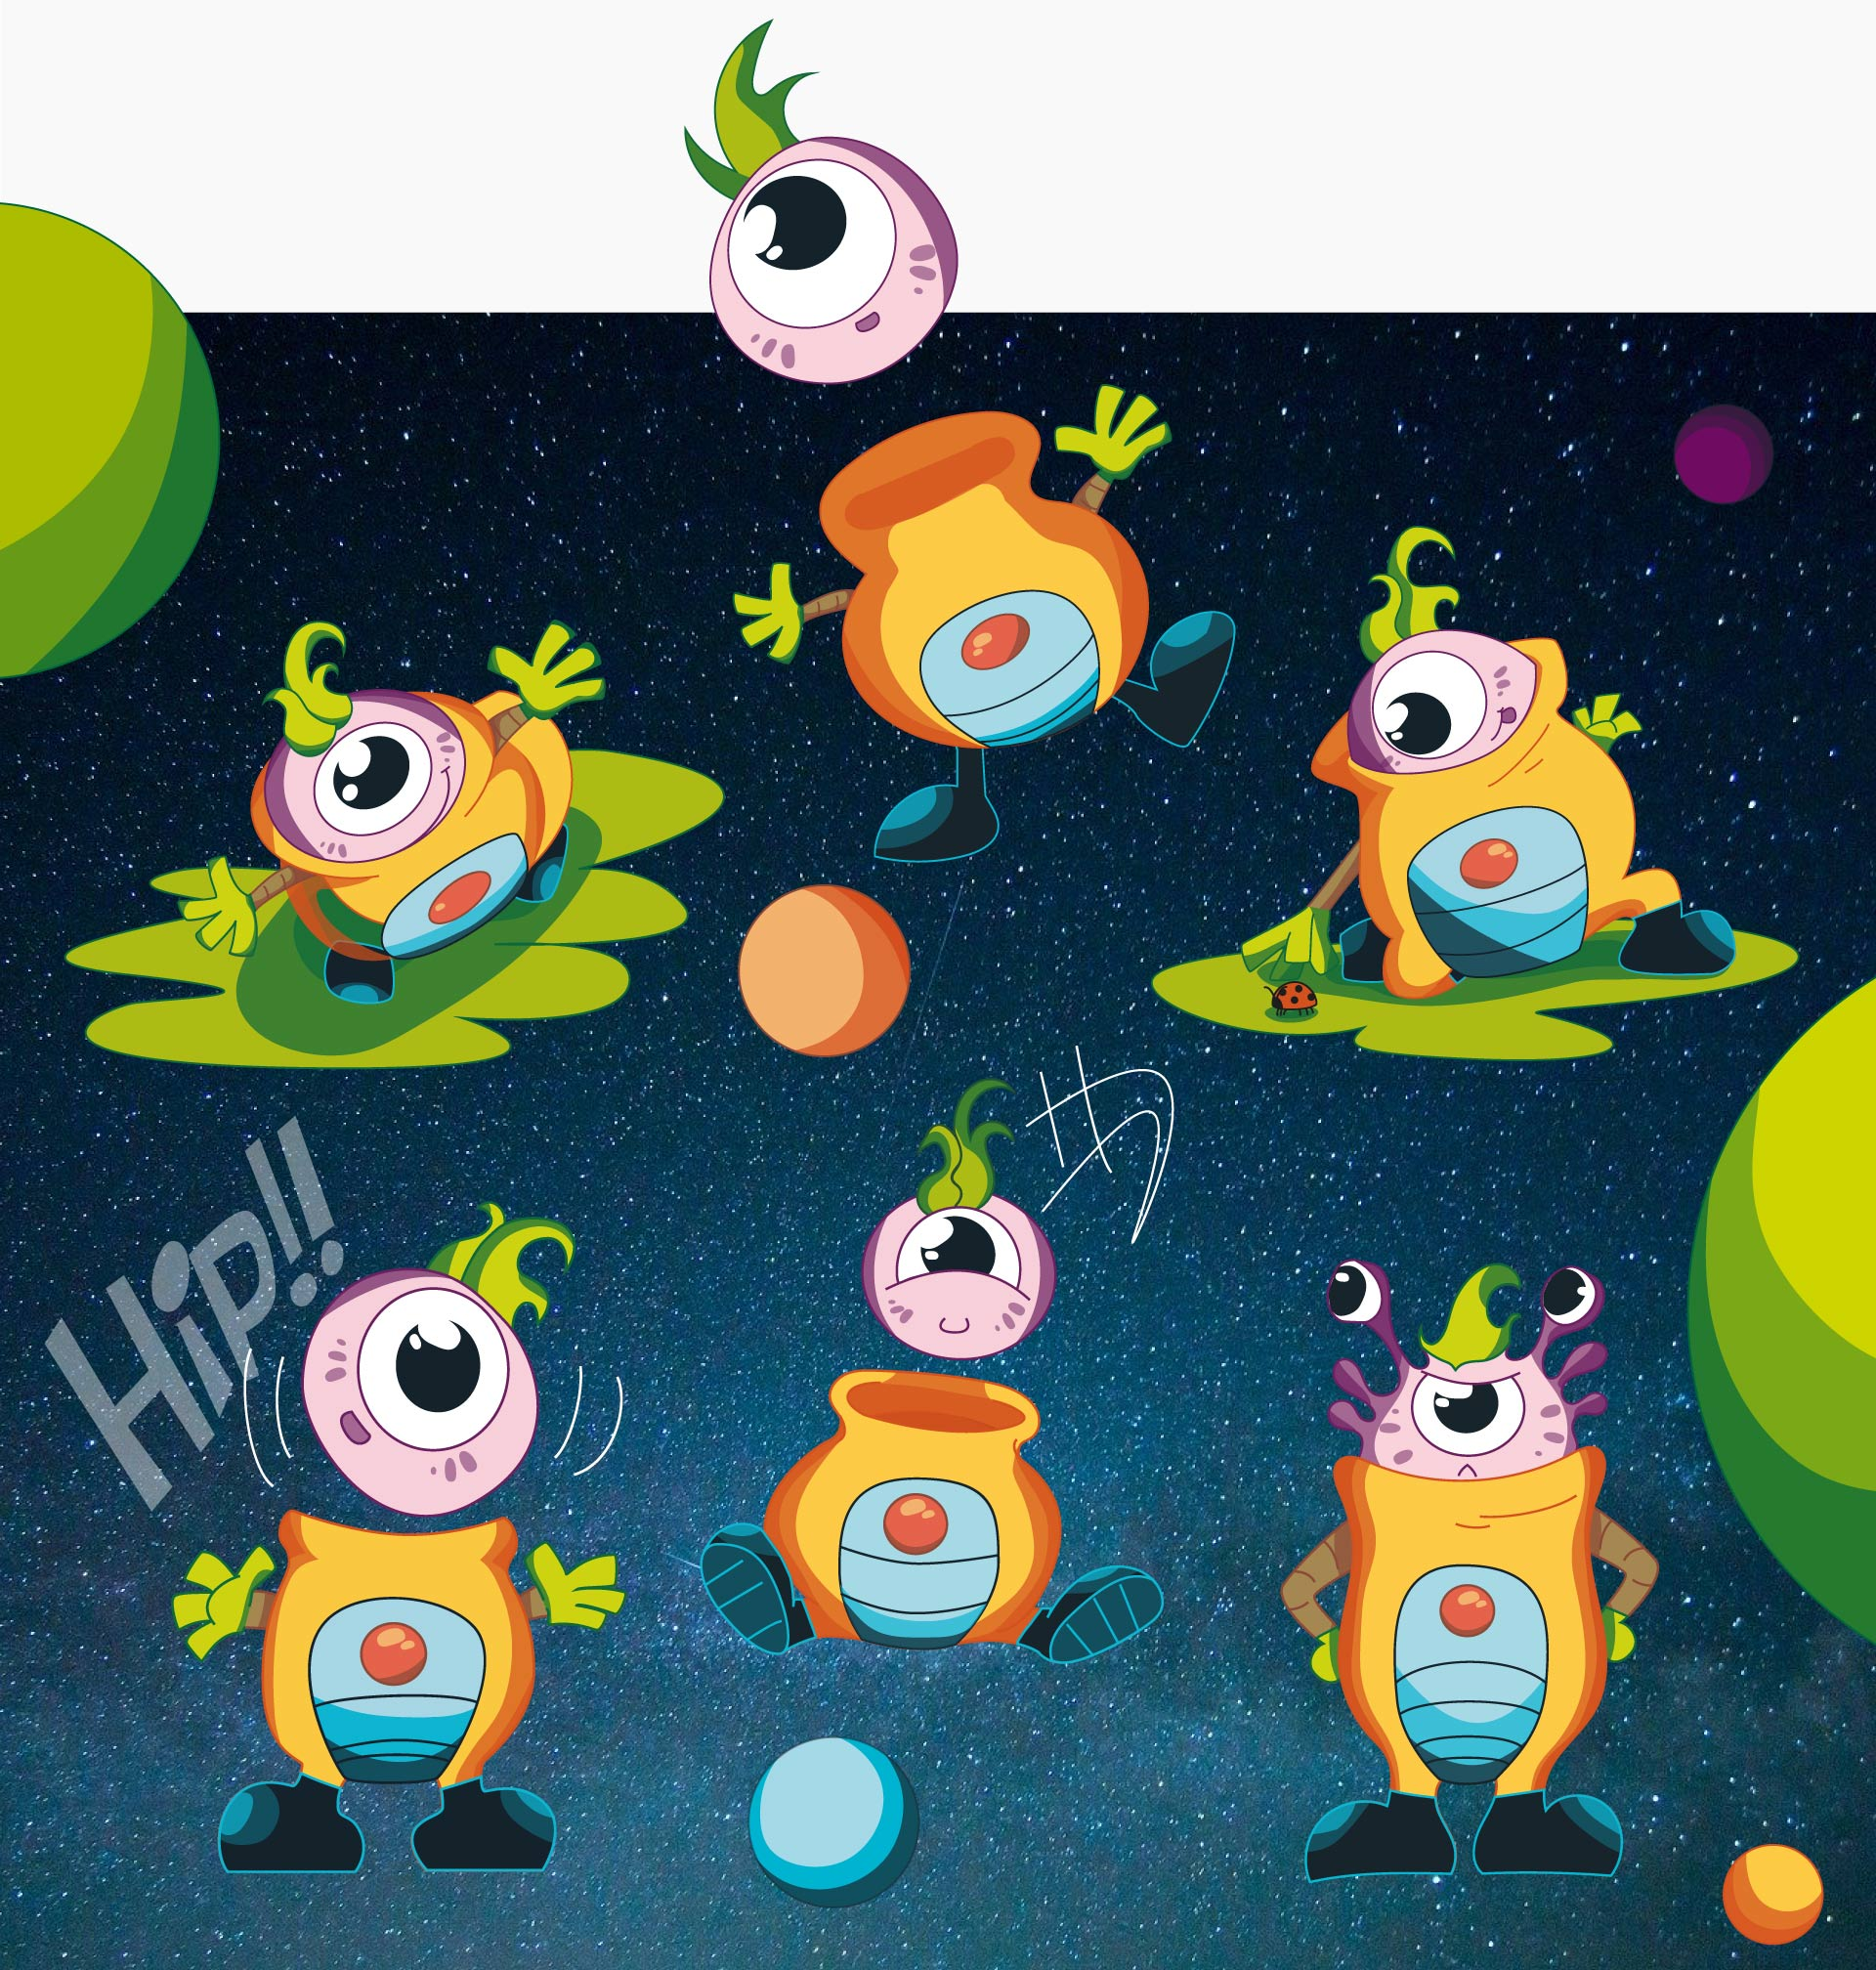 Planet kid's neoky a color